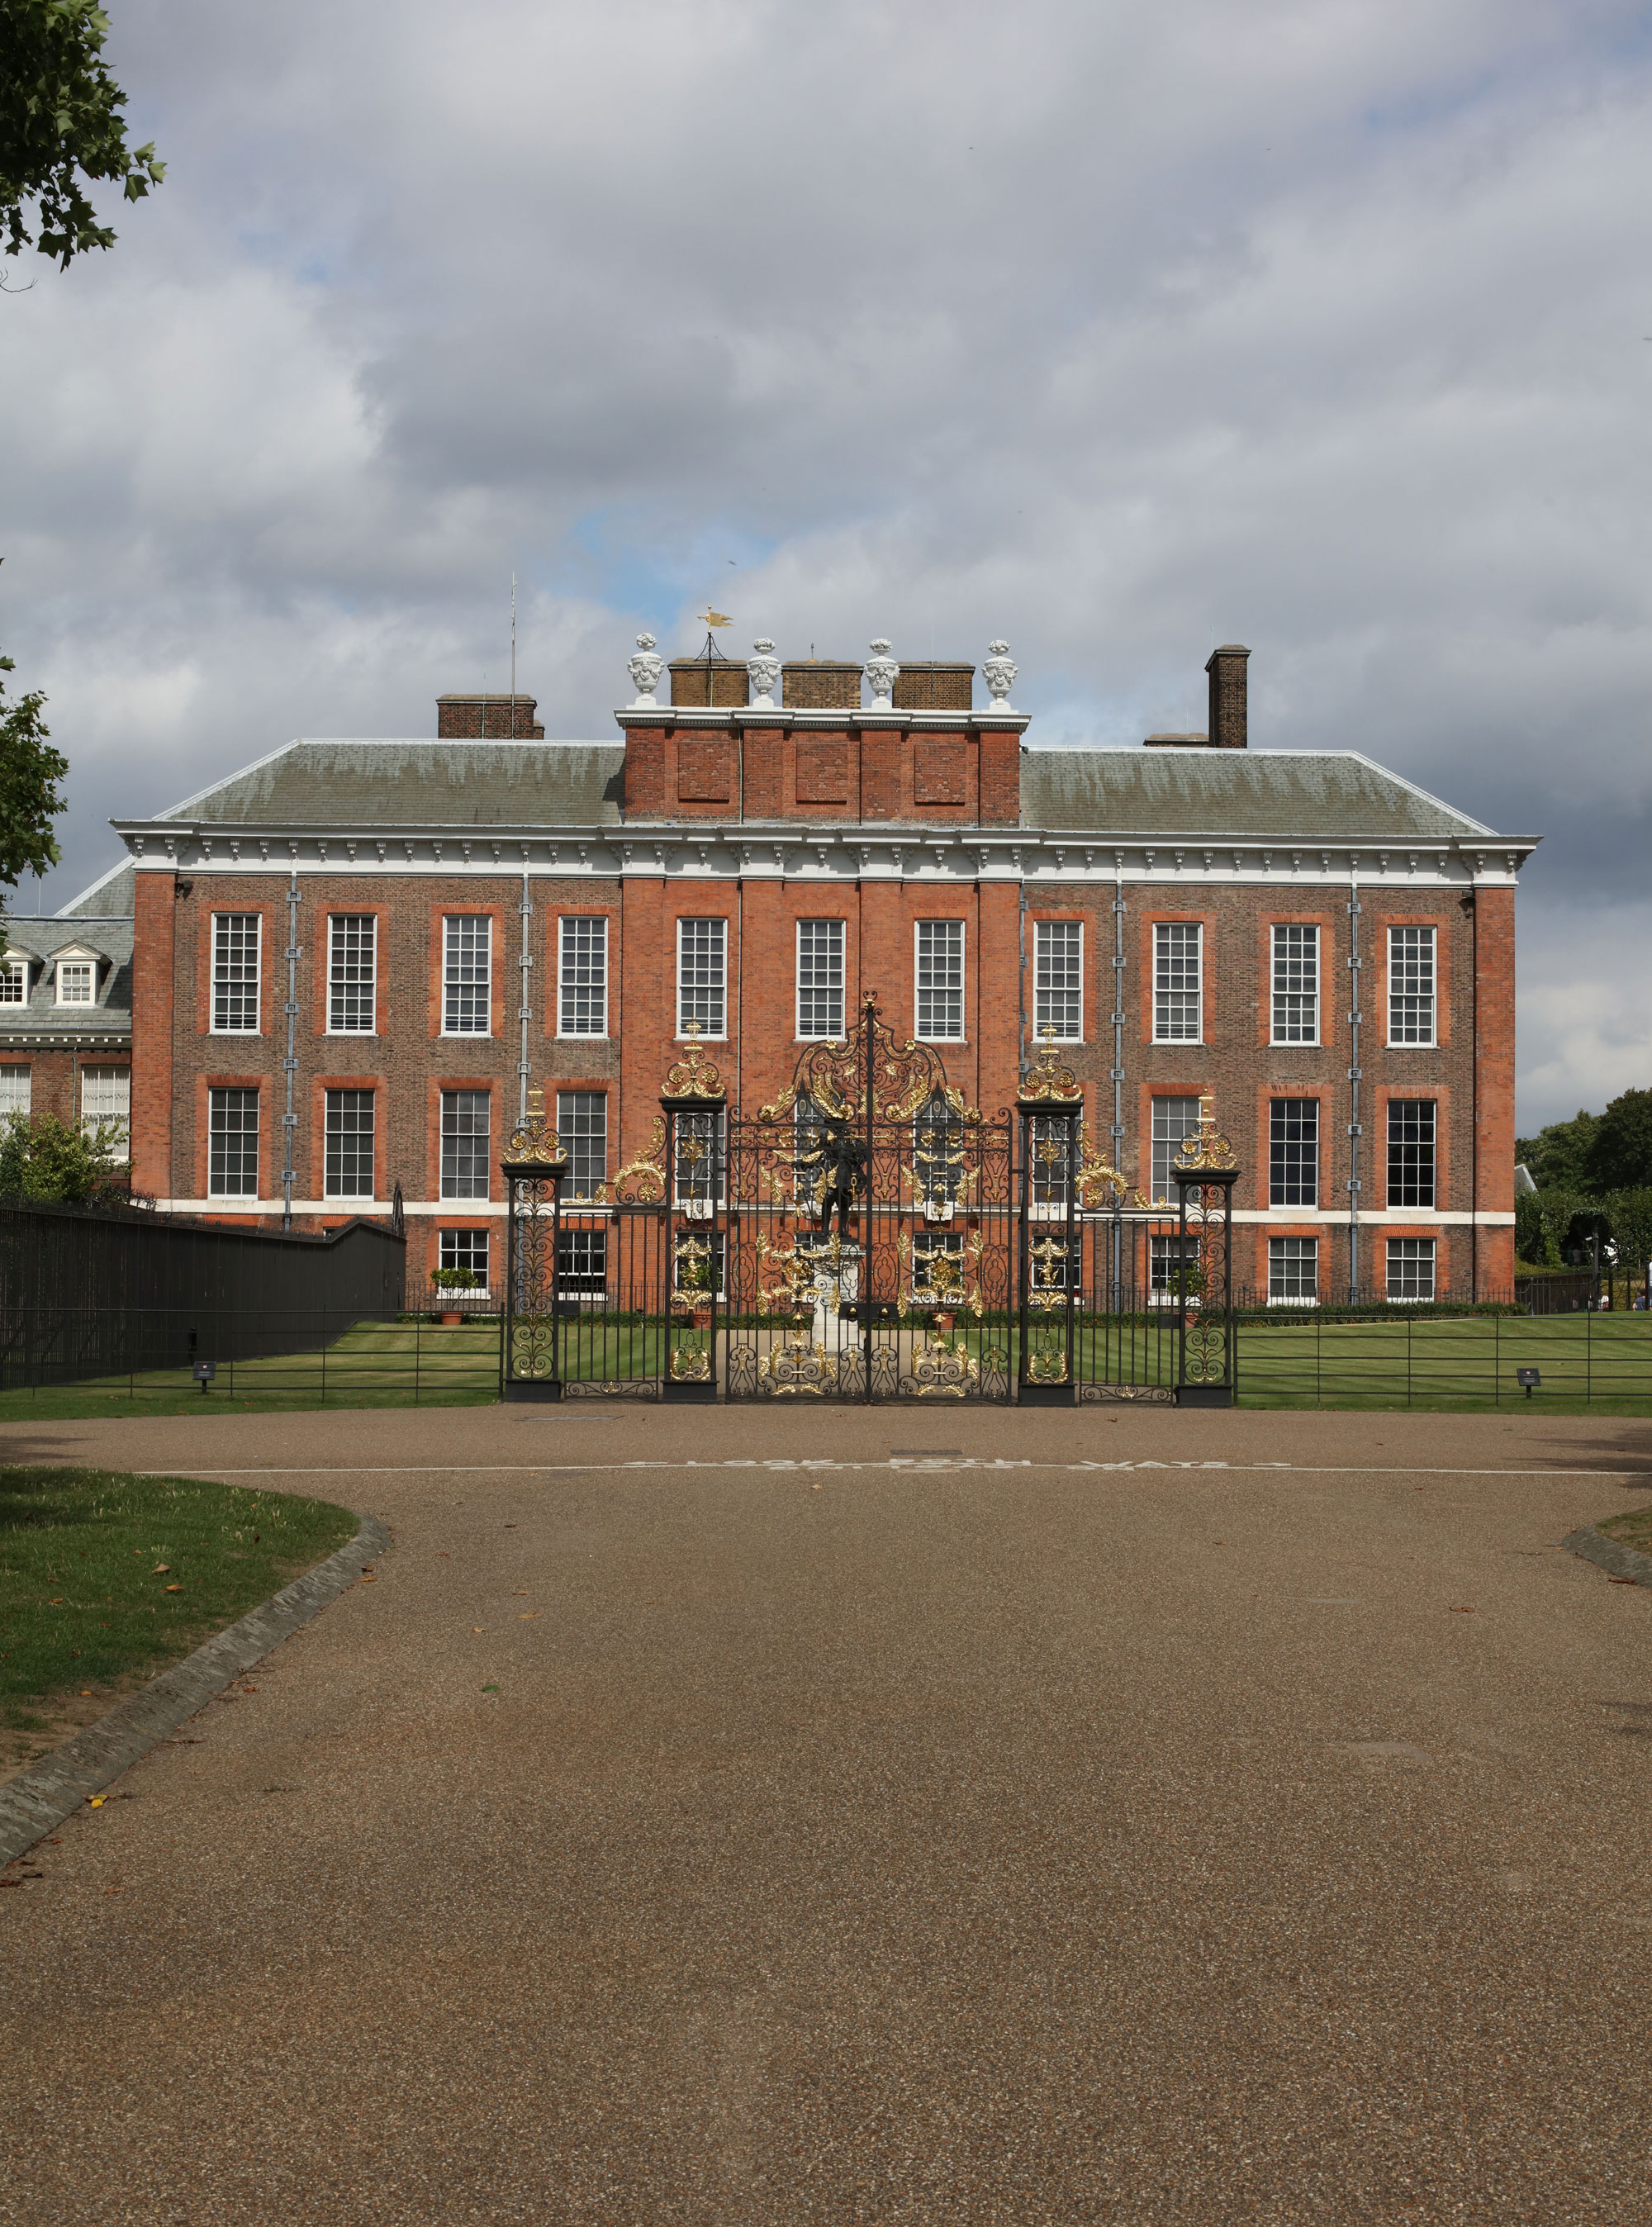 William And Kate Residence Kensington Palace Renovations Set To Make Way For Prince